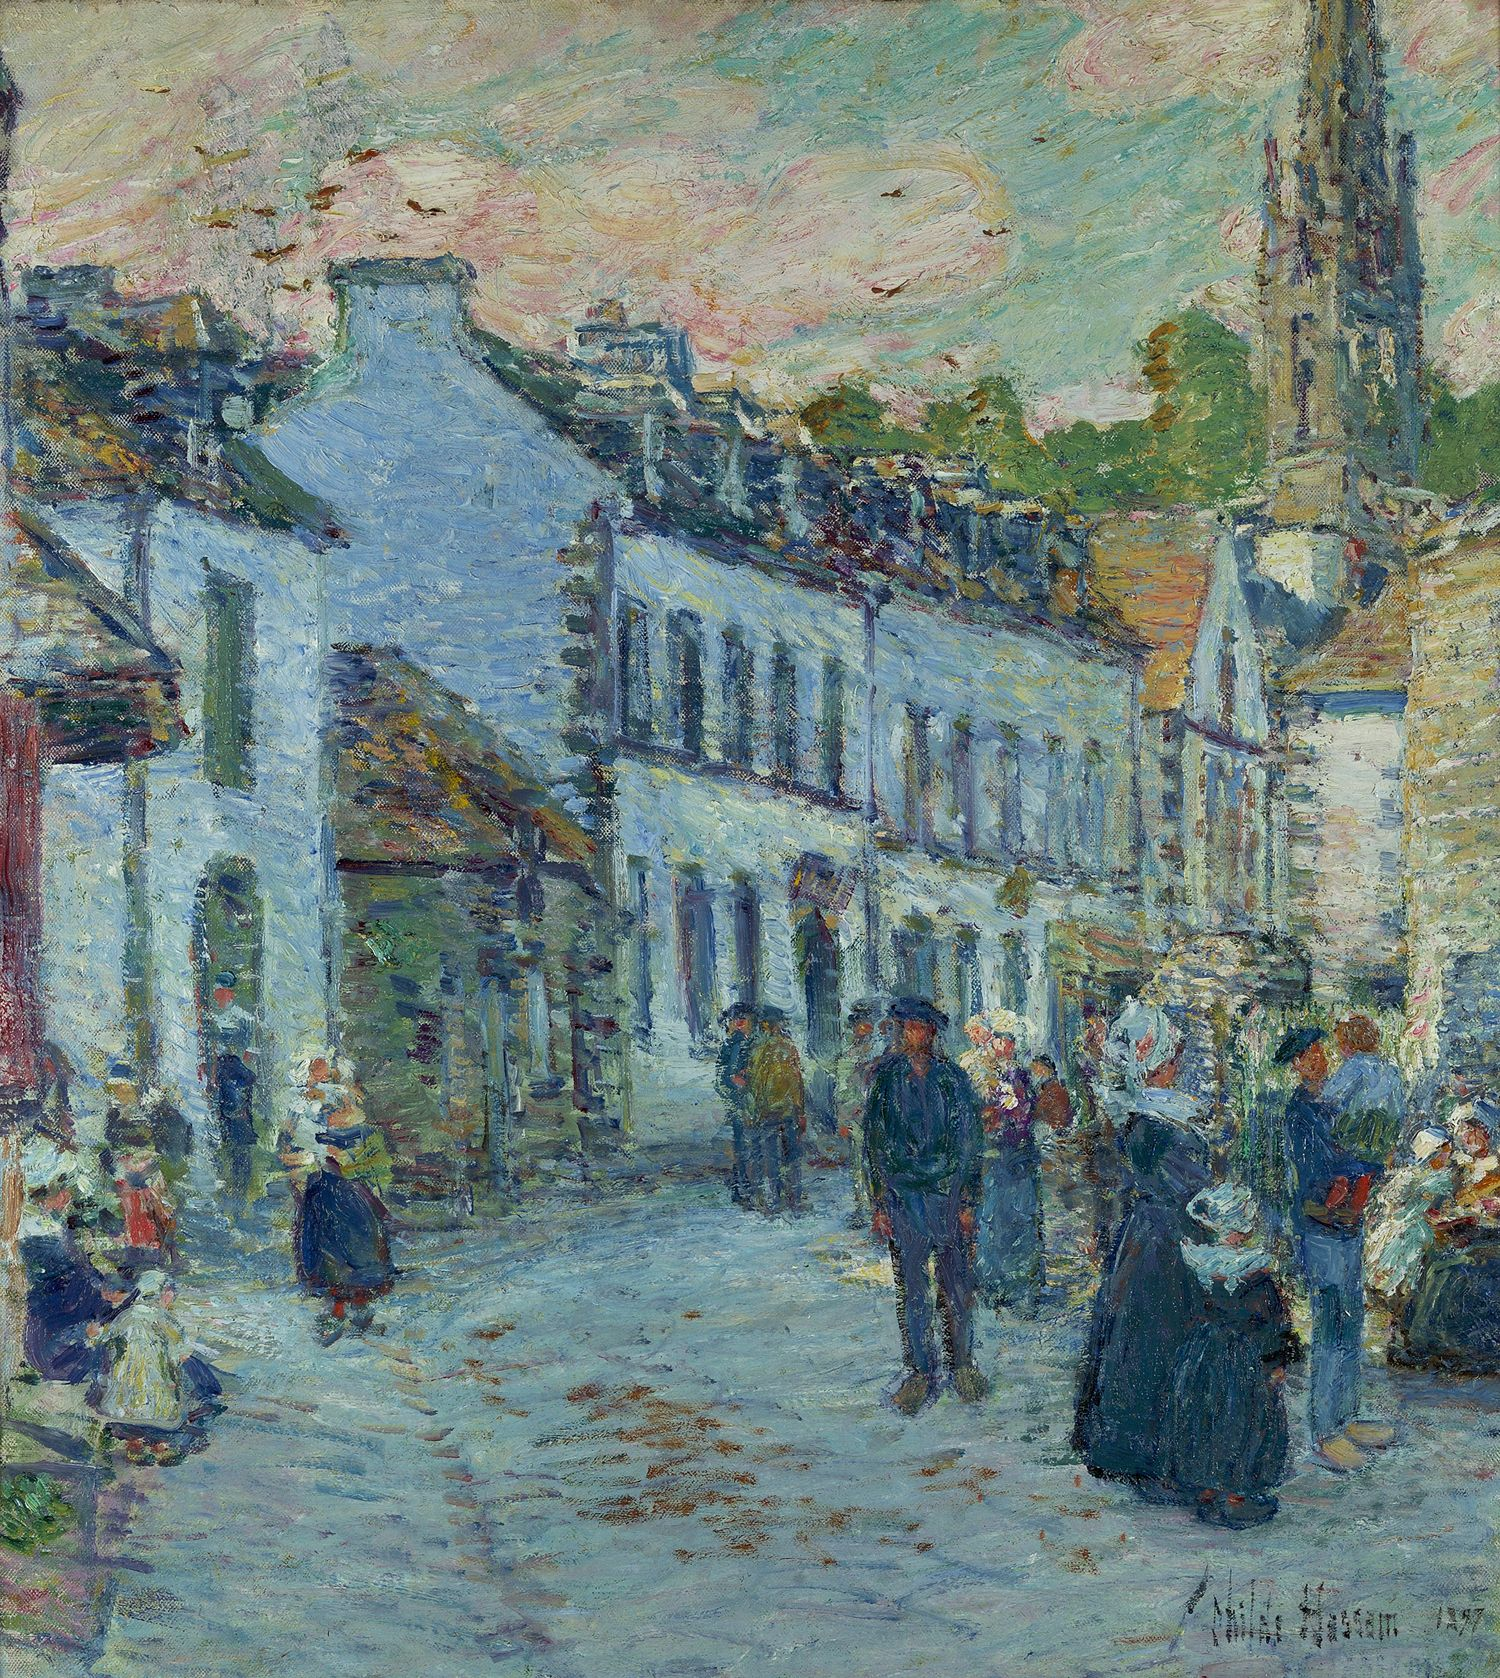 Frederick Childe Hassam (1859-1934), Street in Pont-Aven, Evening, 1897